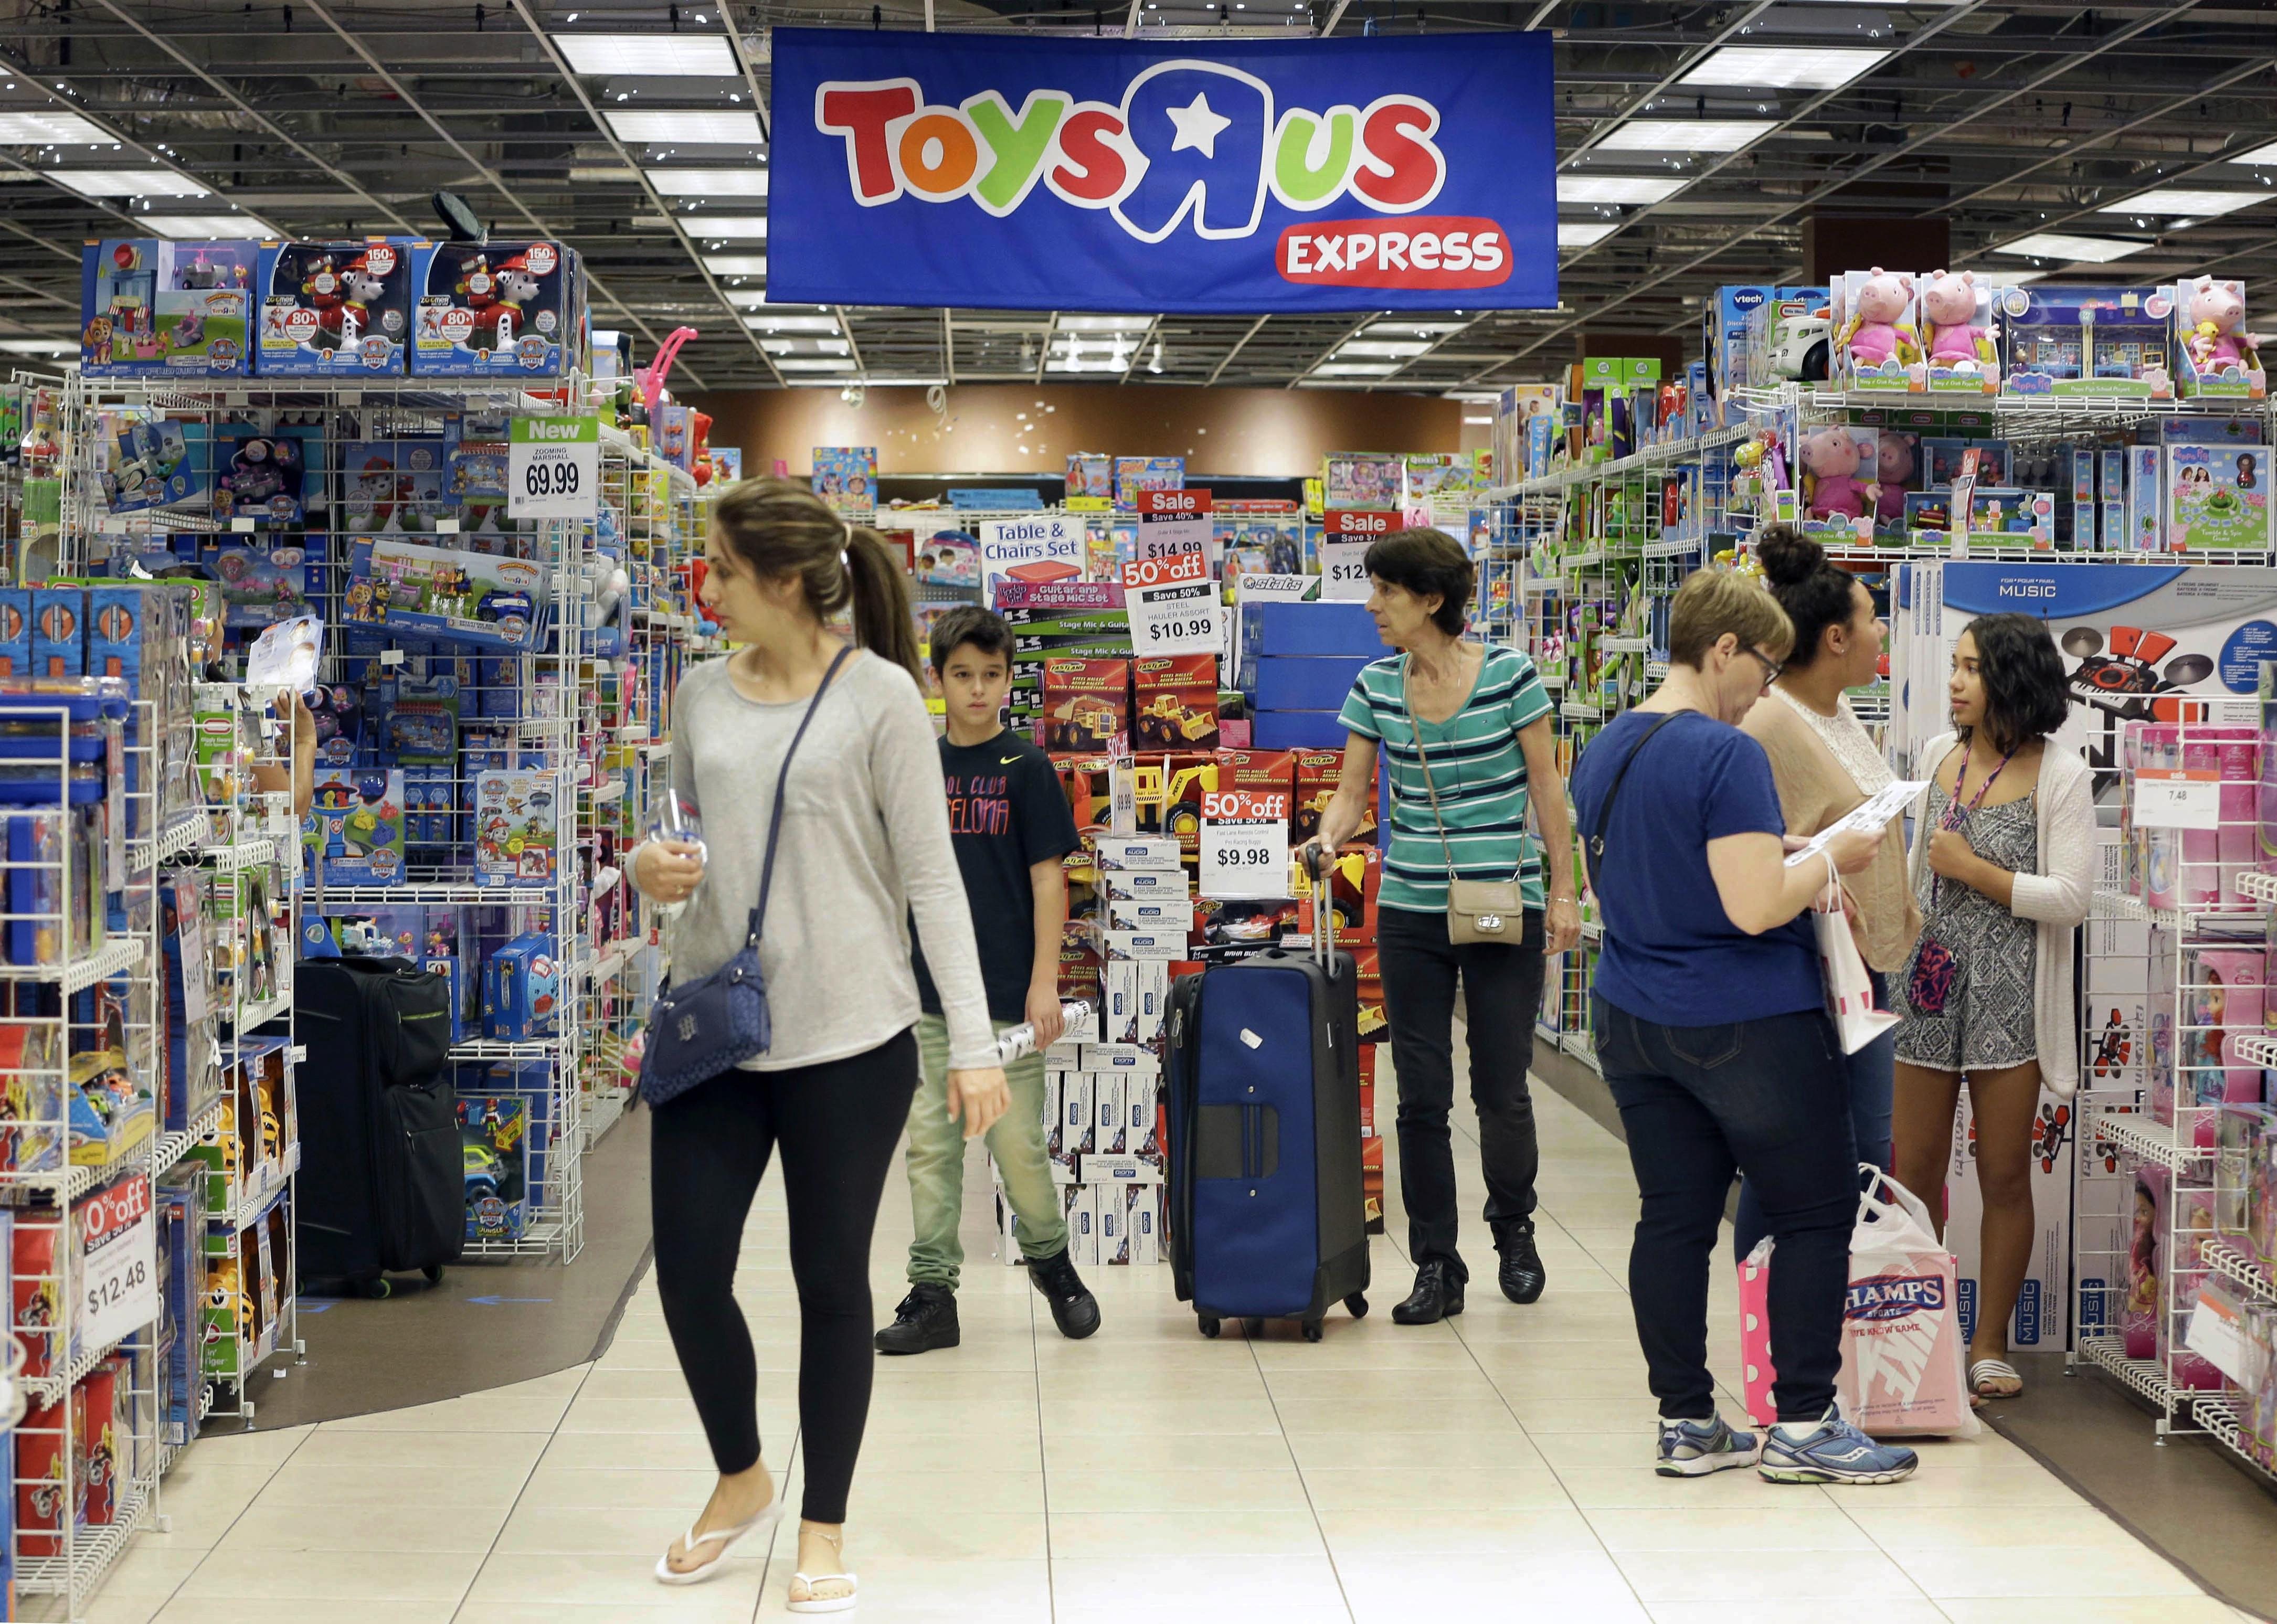 shoppers browse at a toys r us store in miami the national toy chain